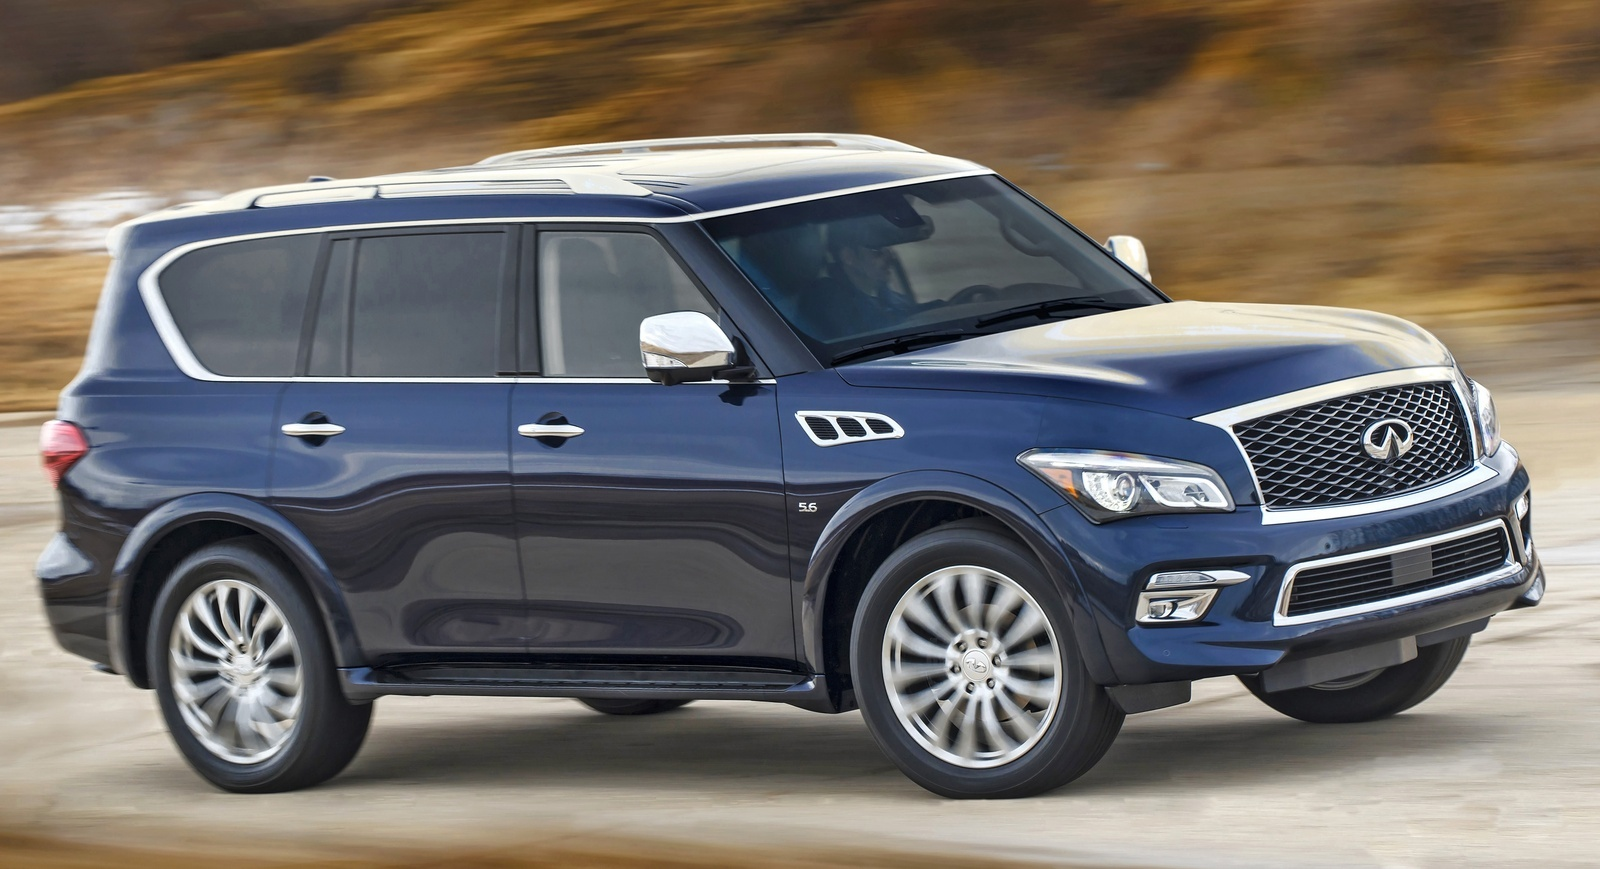 2015 infiniti qx80 review cargurus. Black Bedroom Furniture Sets. Home Design Ideas